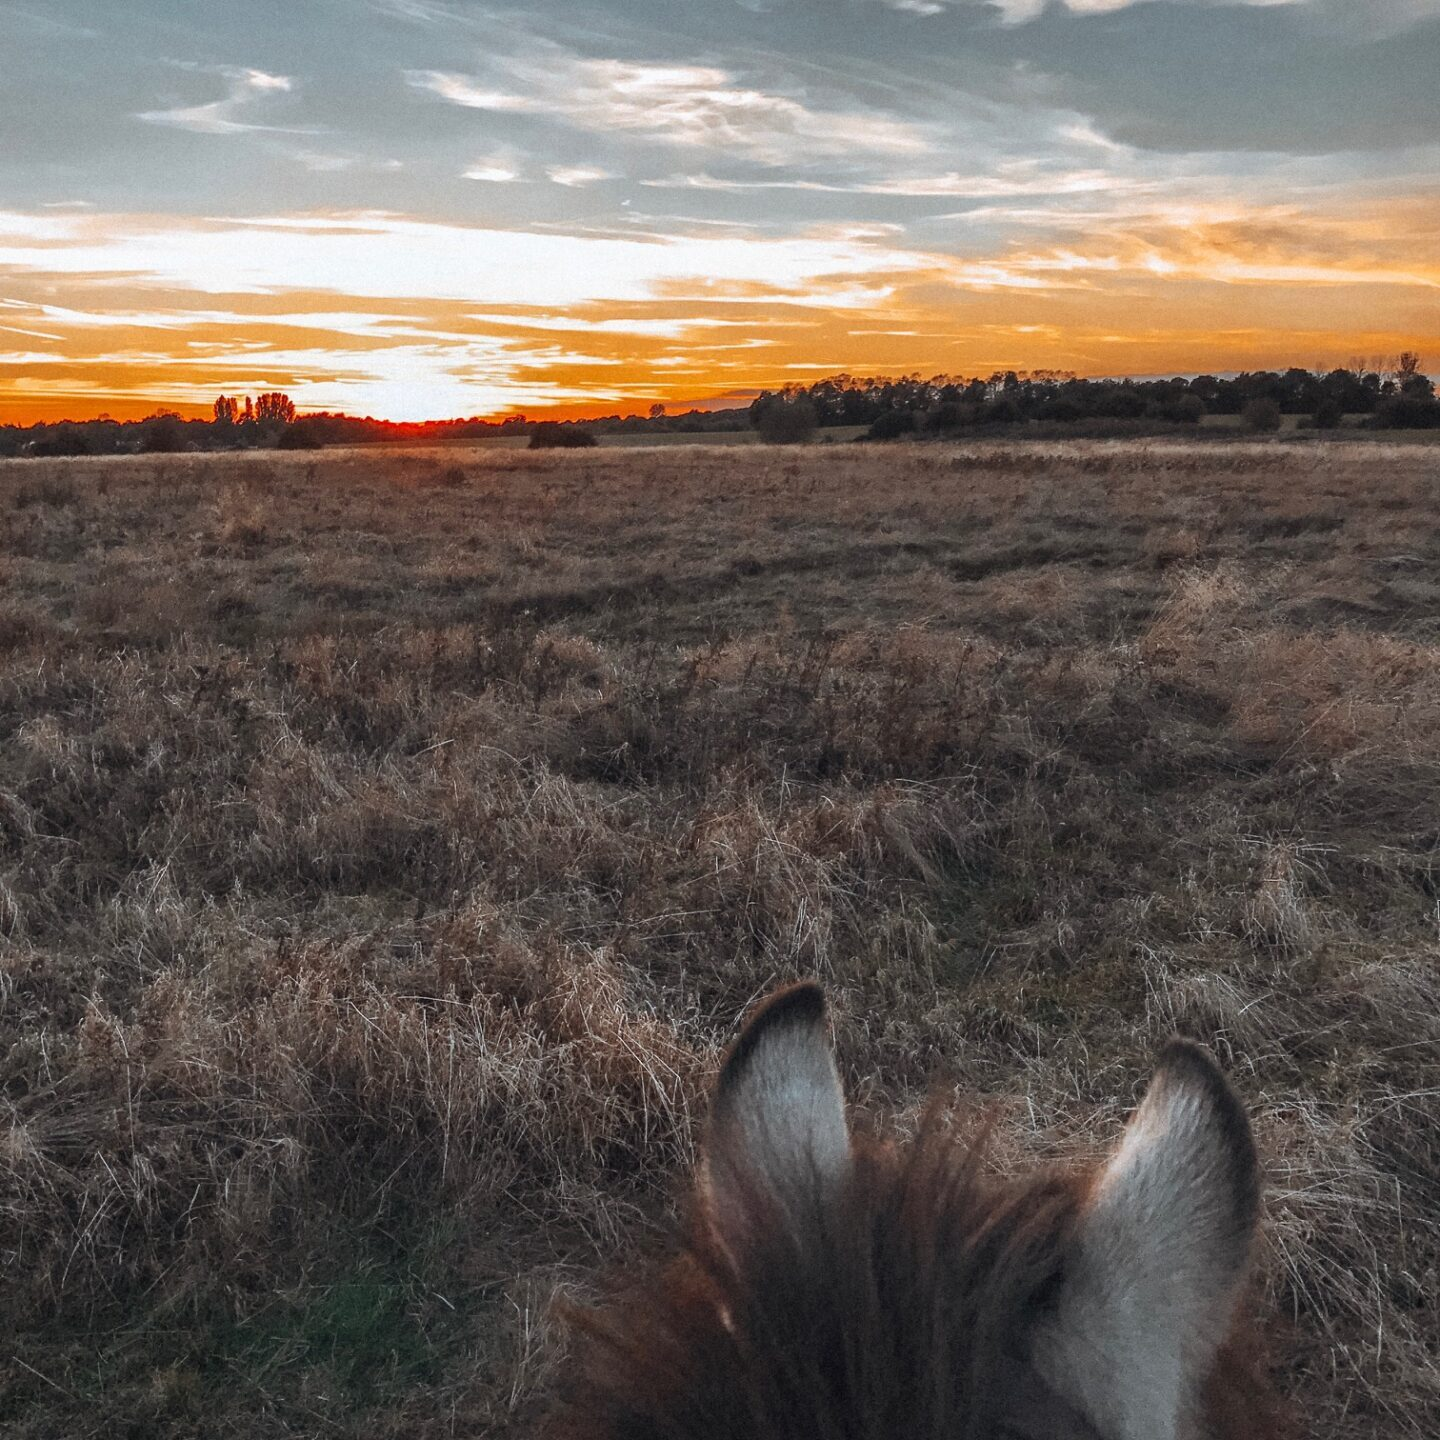 View of the sunset through a horses ears